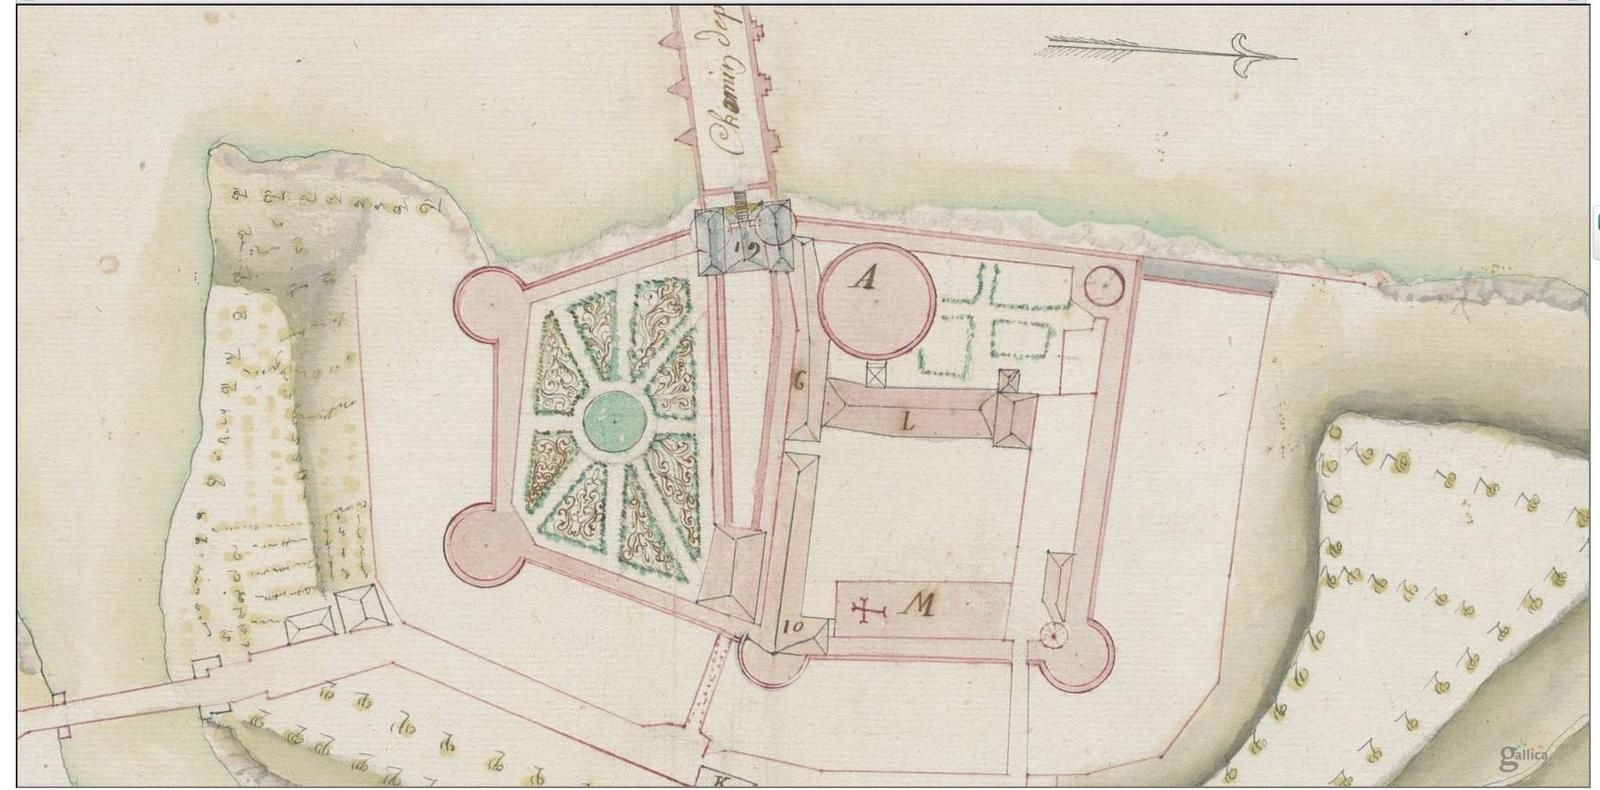 « Plan du château du Pont de l'Arche pour servir au projet de l'année 1754 ». Ce plan aquarellé (41 x 54 cm), est conservé à la Bibliothèque nationale de France, département Arsenal, et accessible sur Internet : http://catalogue.bnf.fr/ark:/12148/cb421591410. Il confirme plutôt les vues de P. Petit et Jacques Gomboust.